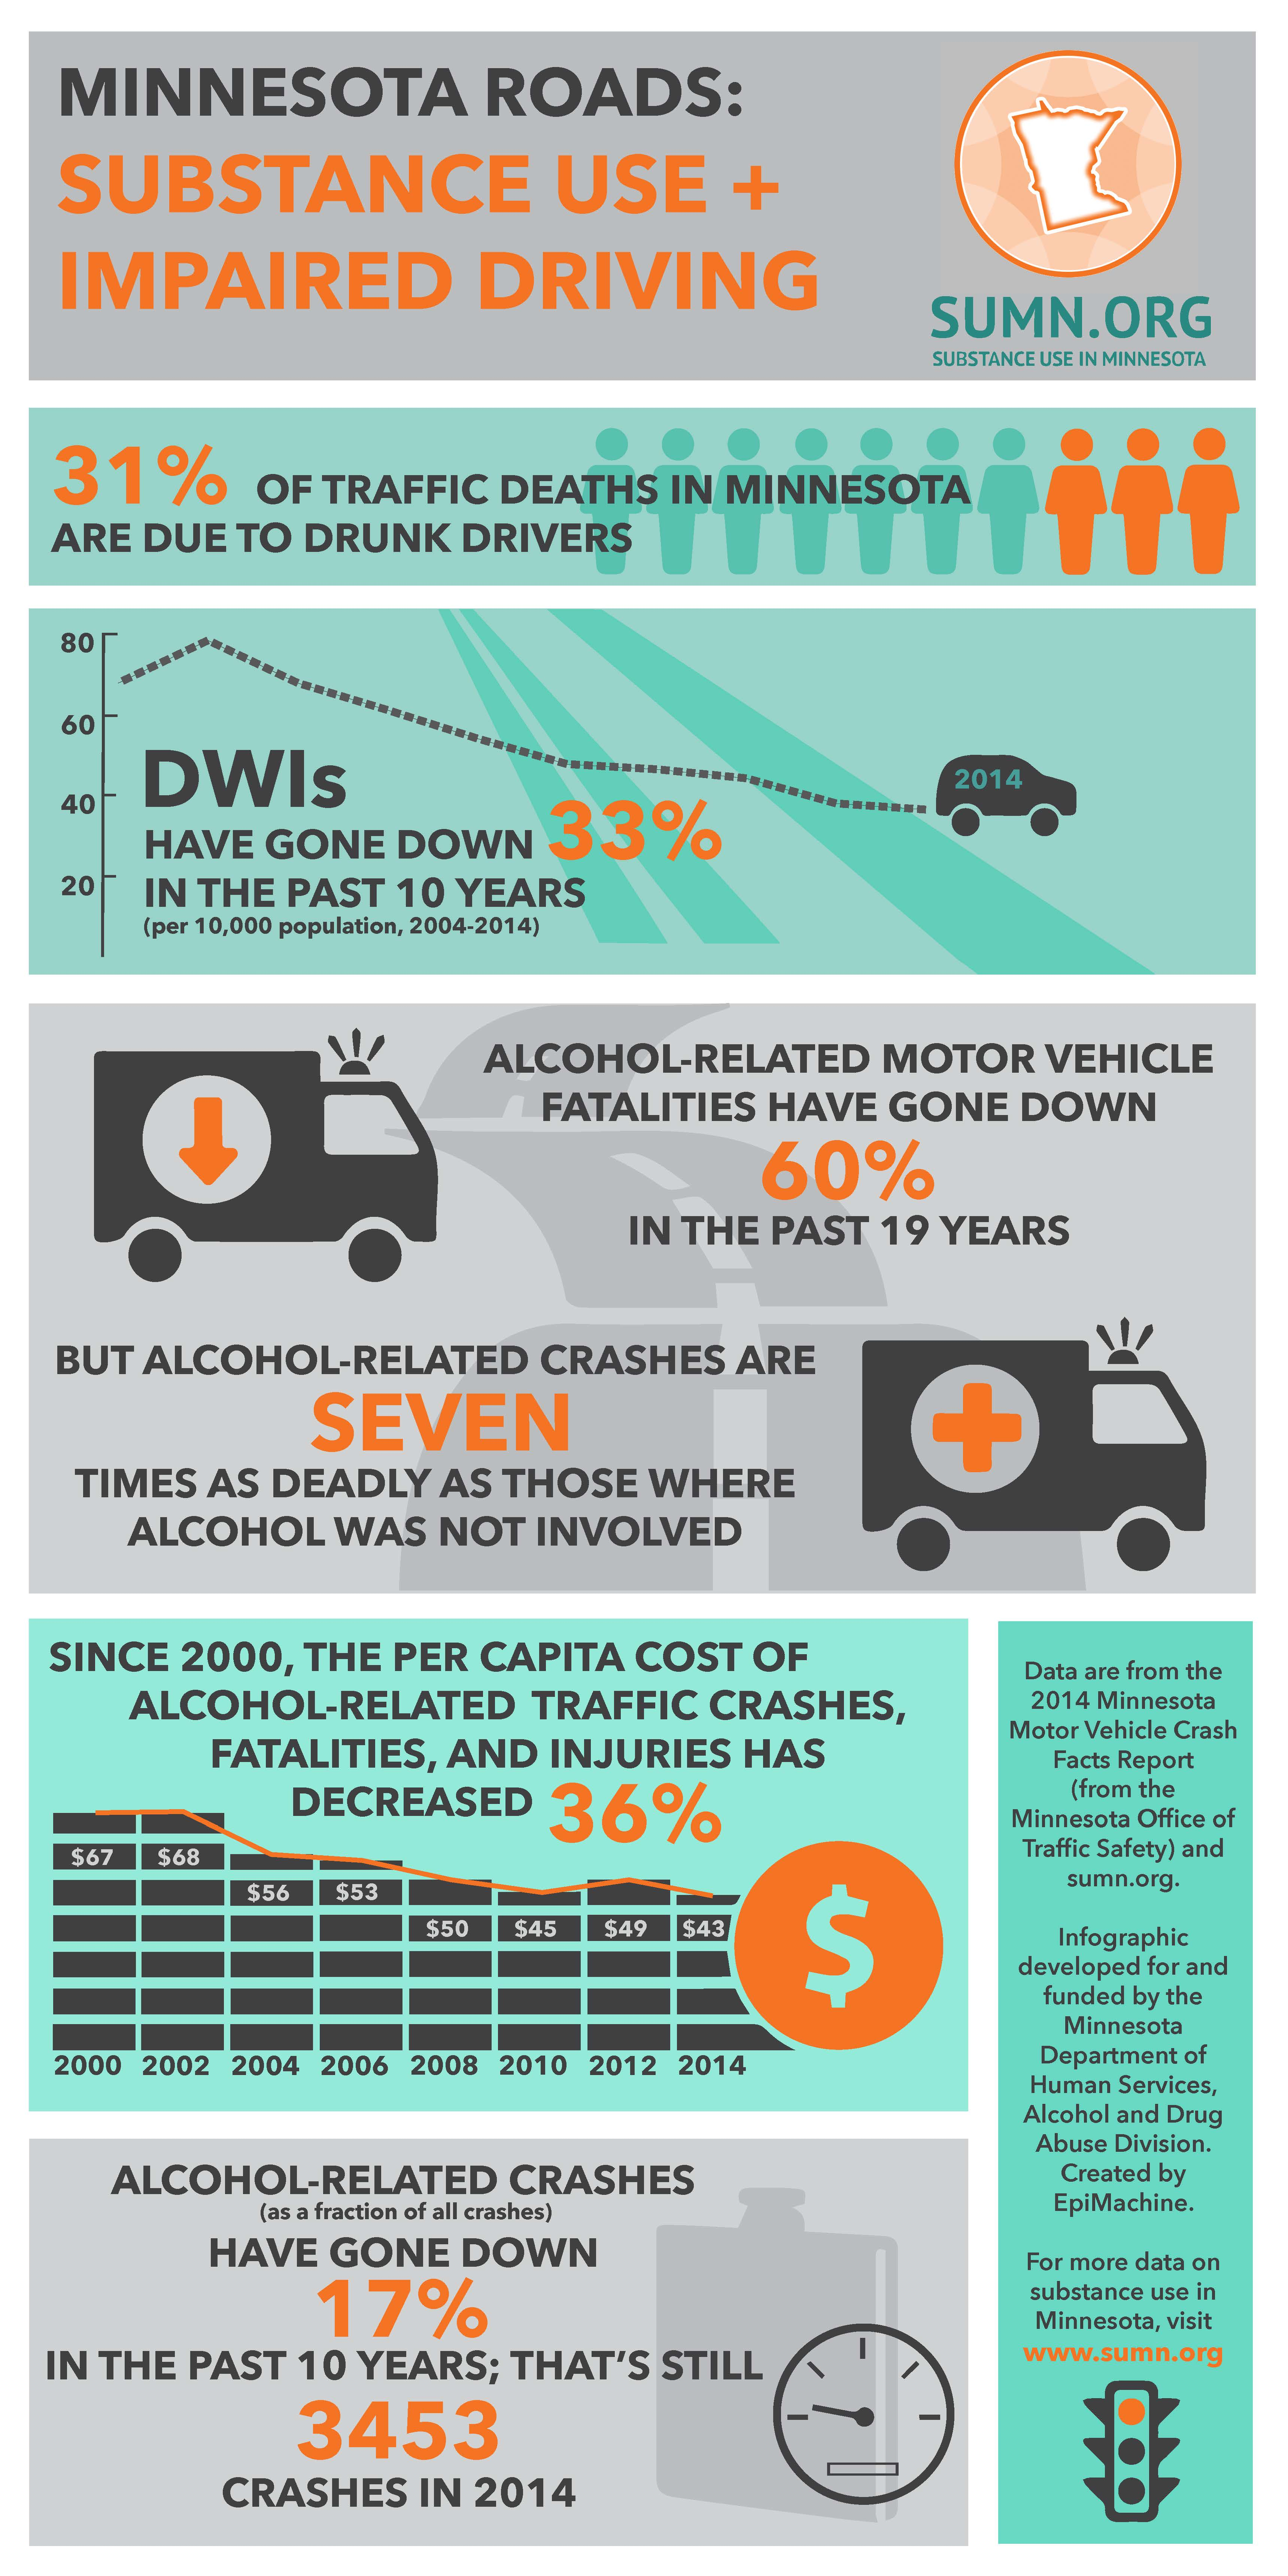 JPG of Minnesota Crash Facts Infographic